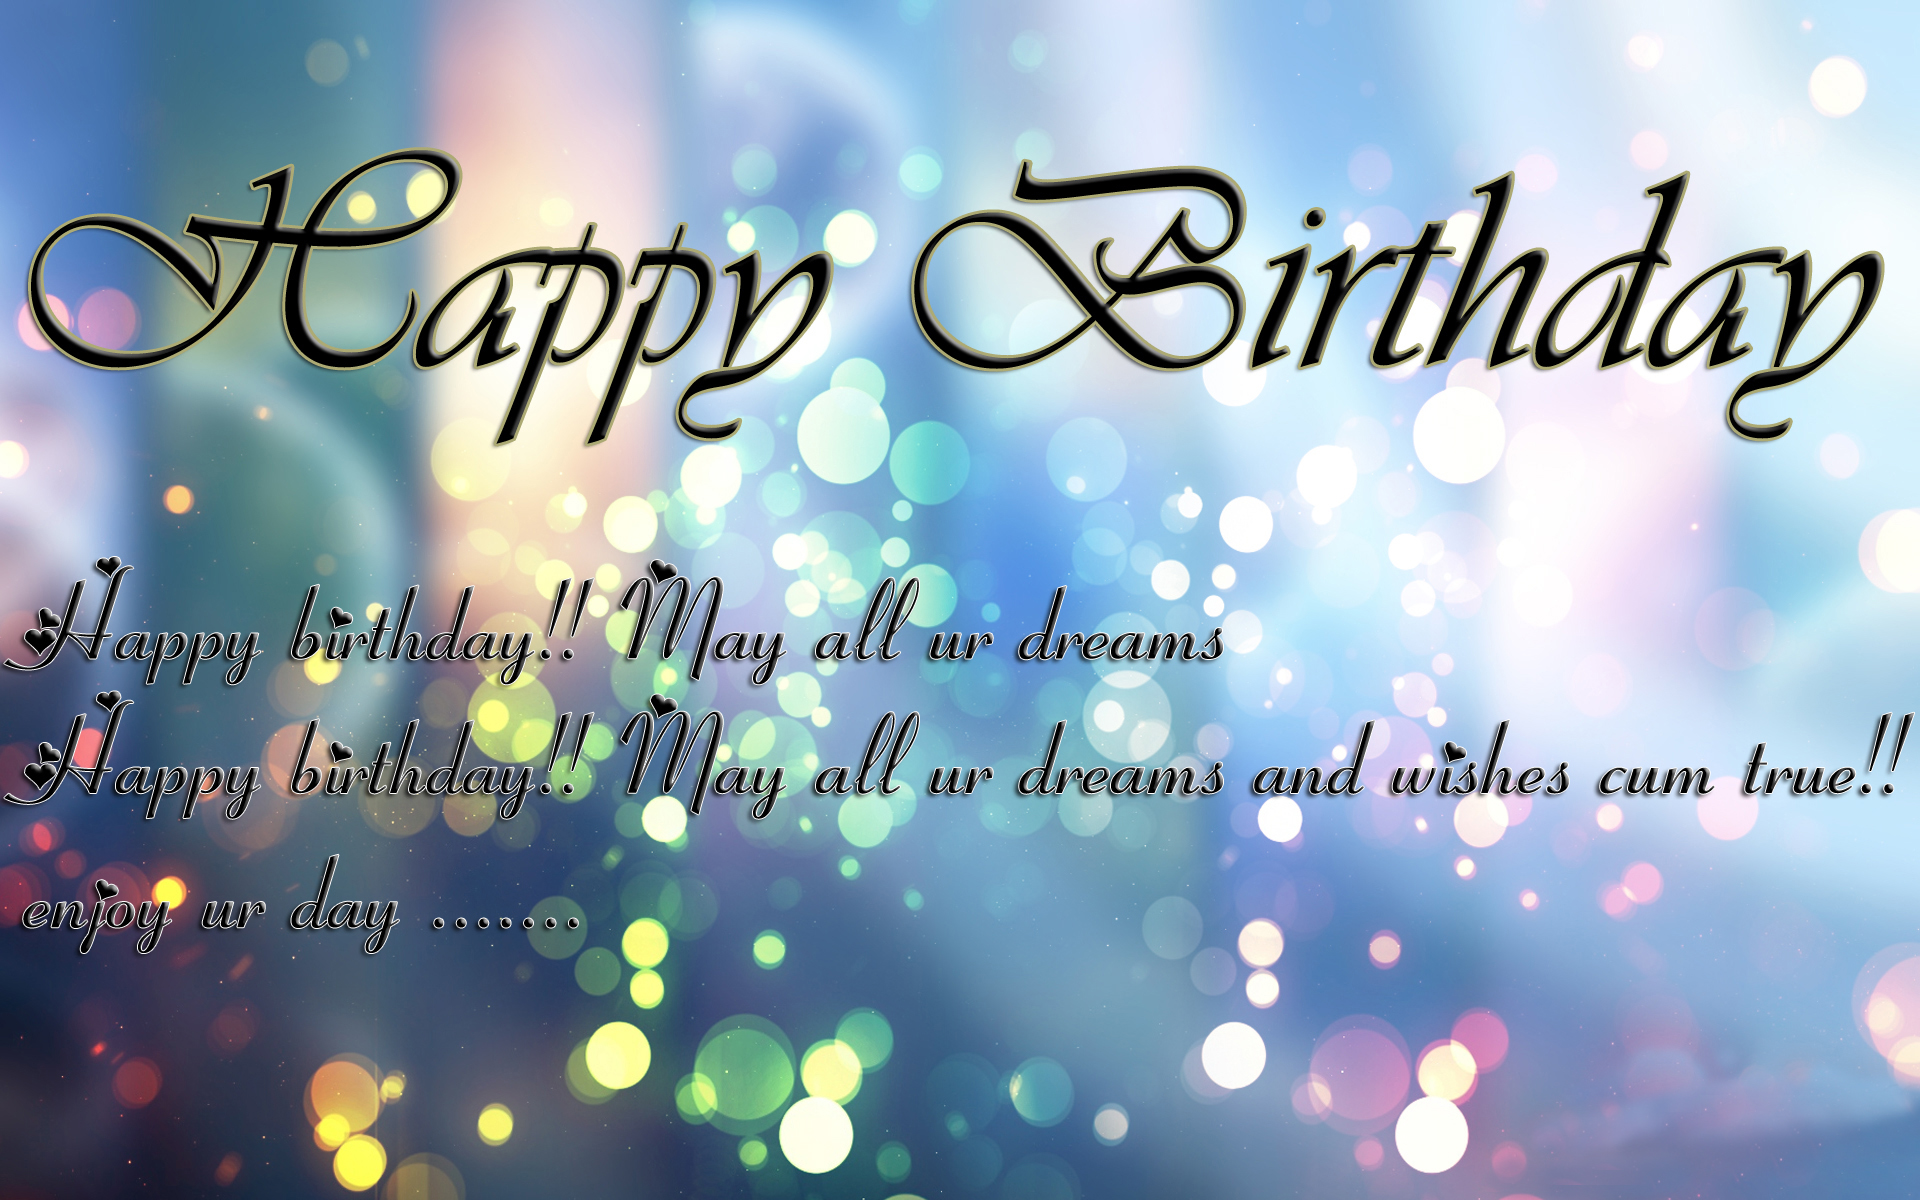 birthday message wallpaper ; Happy-birthday-wishes-for-lover-7